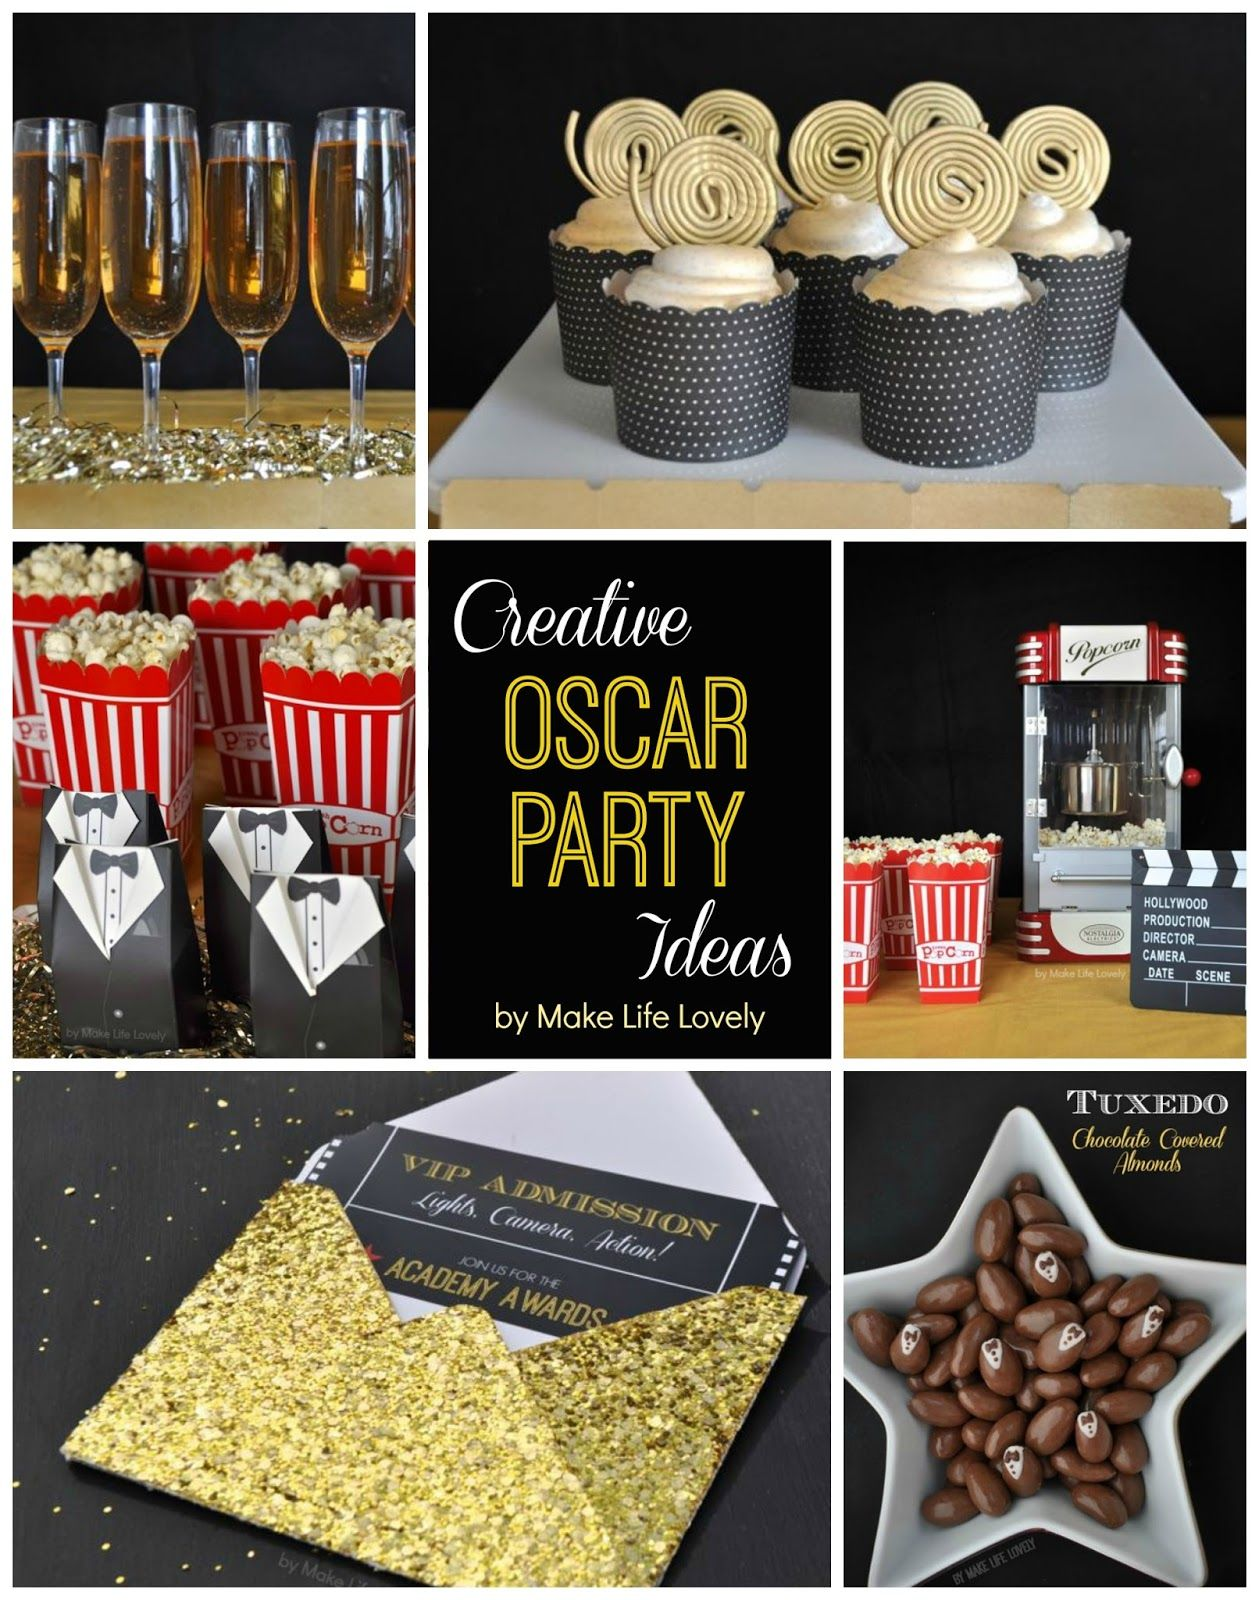 Oscar Themed Party Decoration Ideas Part - 21: Make Life Lovely: Creative Oscars Party Ideas + Film Reel Cupcakes